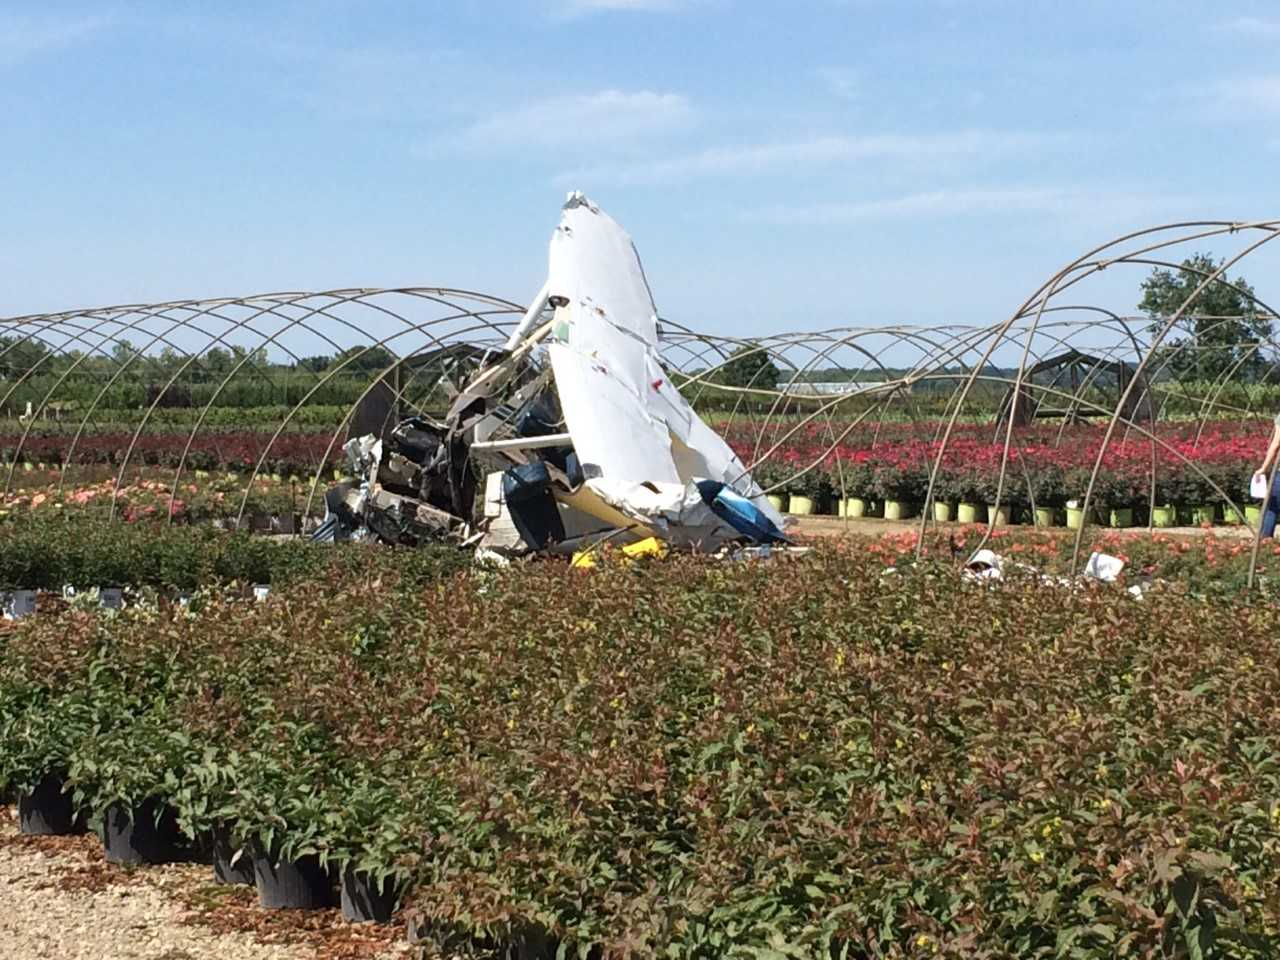 Three people taken to hospital after plane crash in New